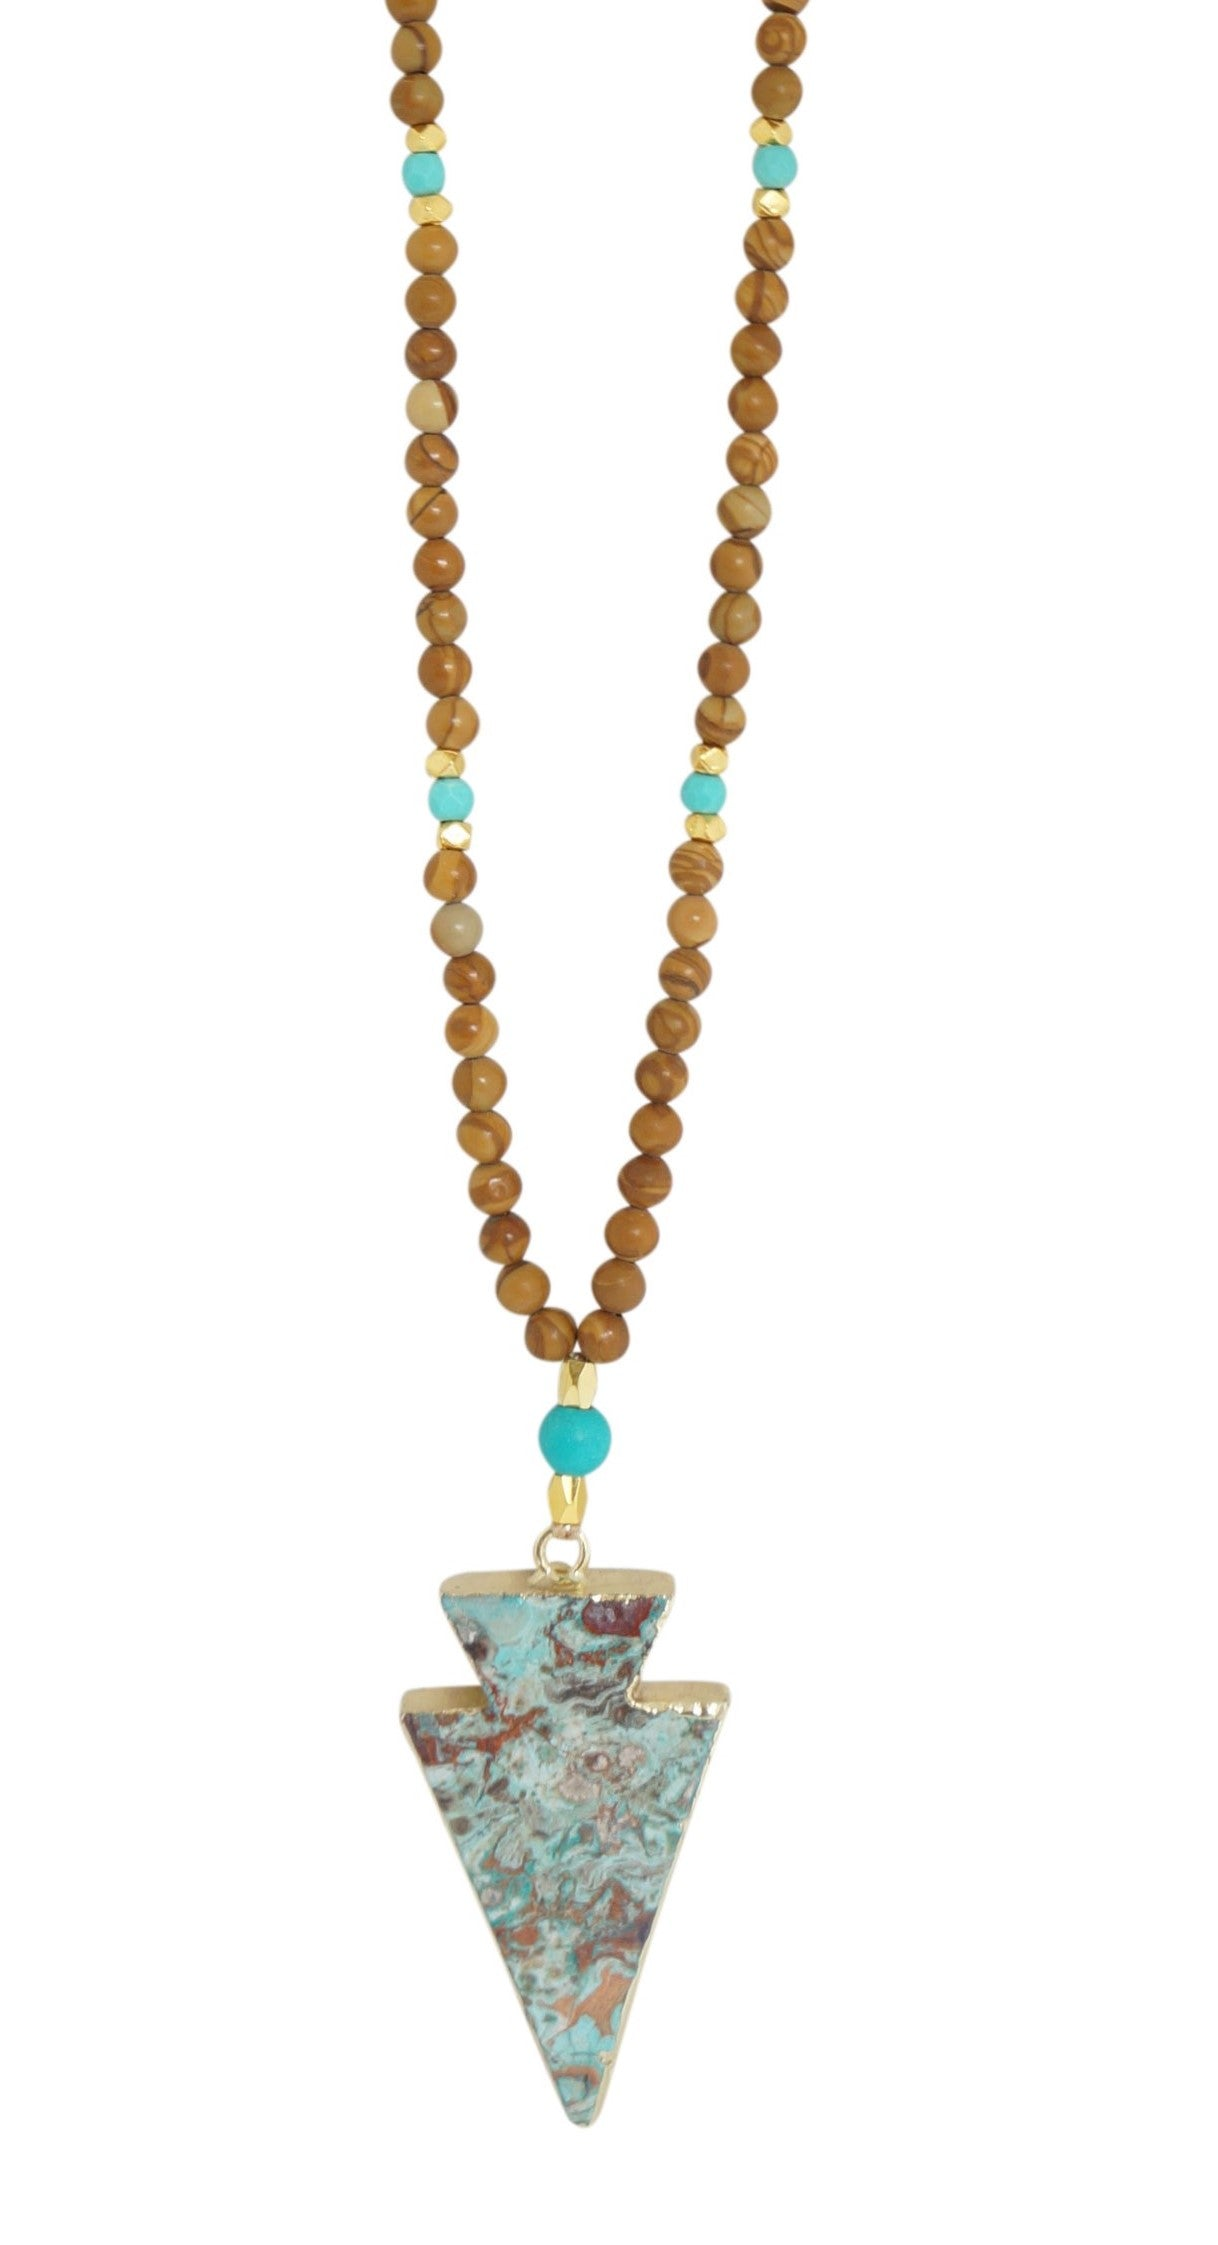 Prosper Necklace - Carolyn Hearn Designs